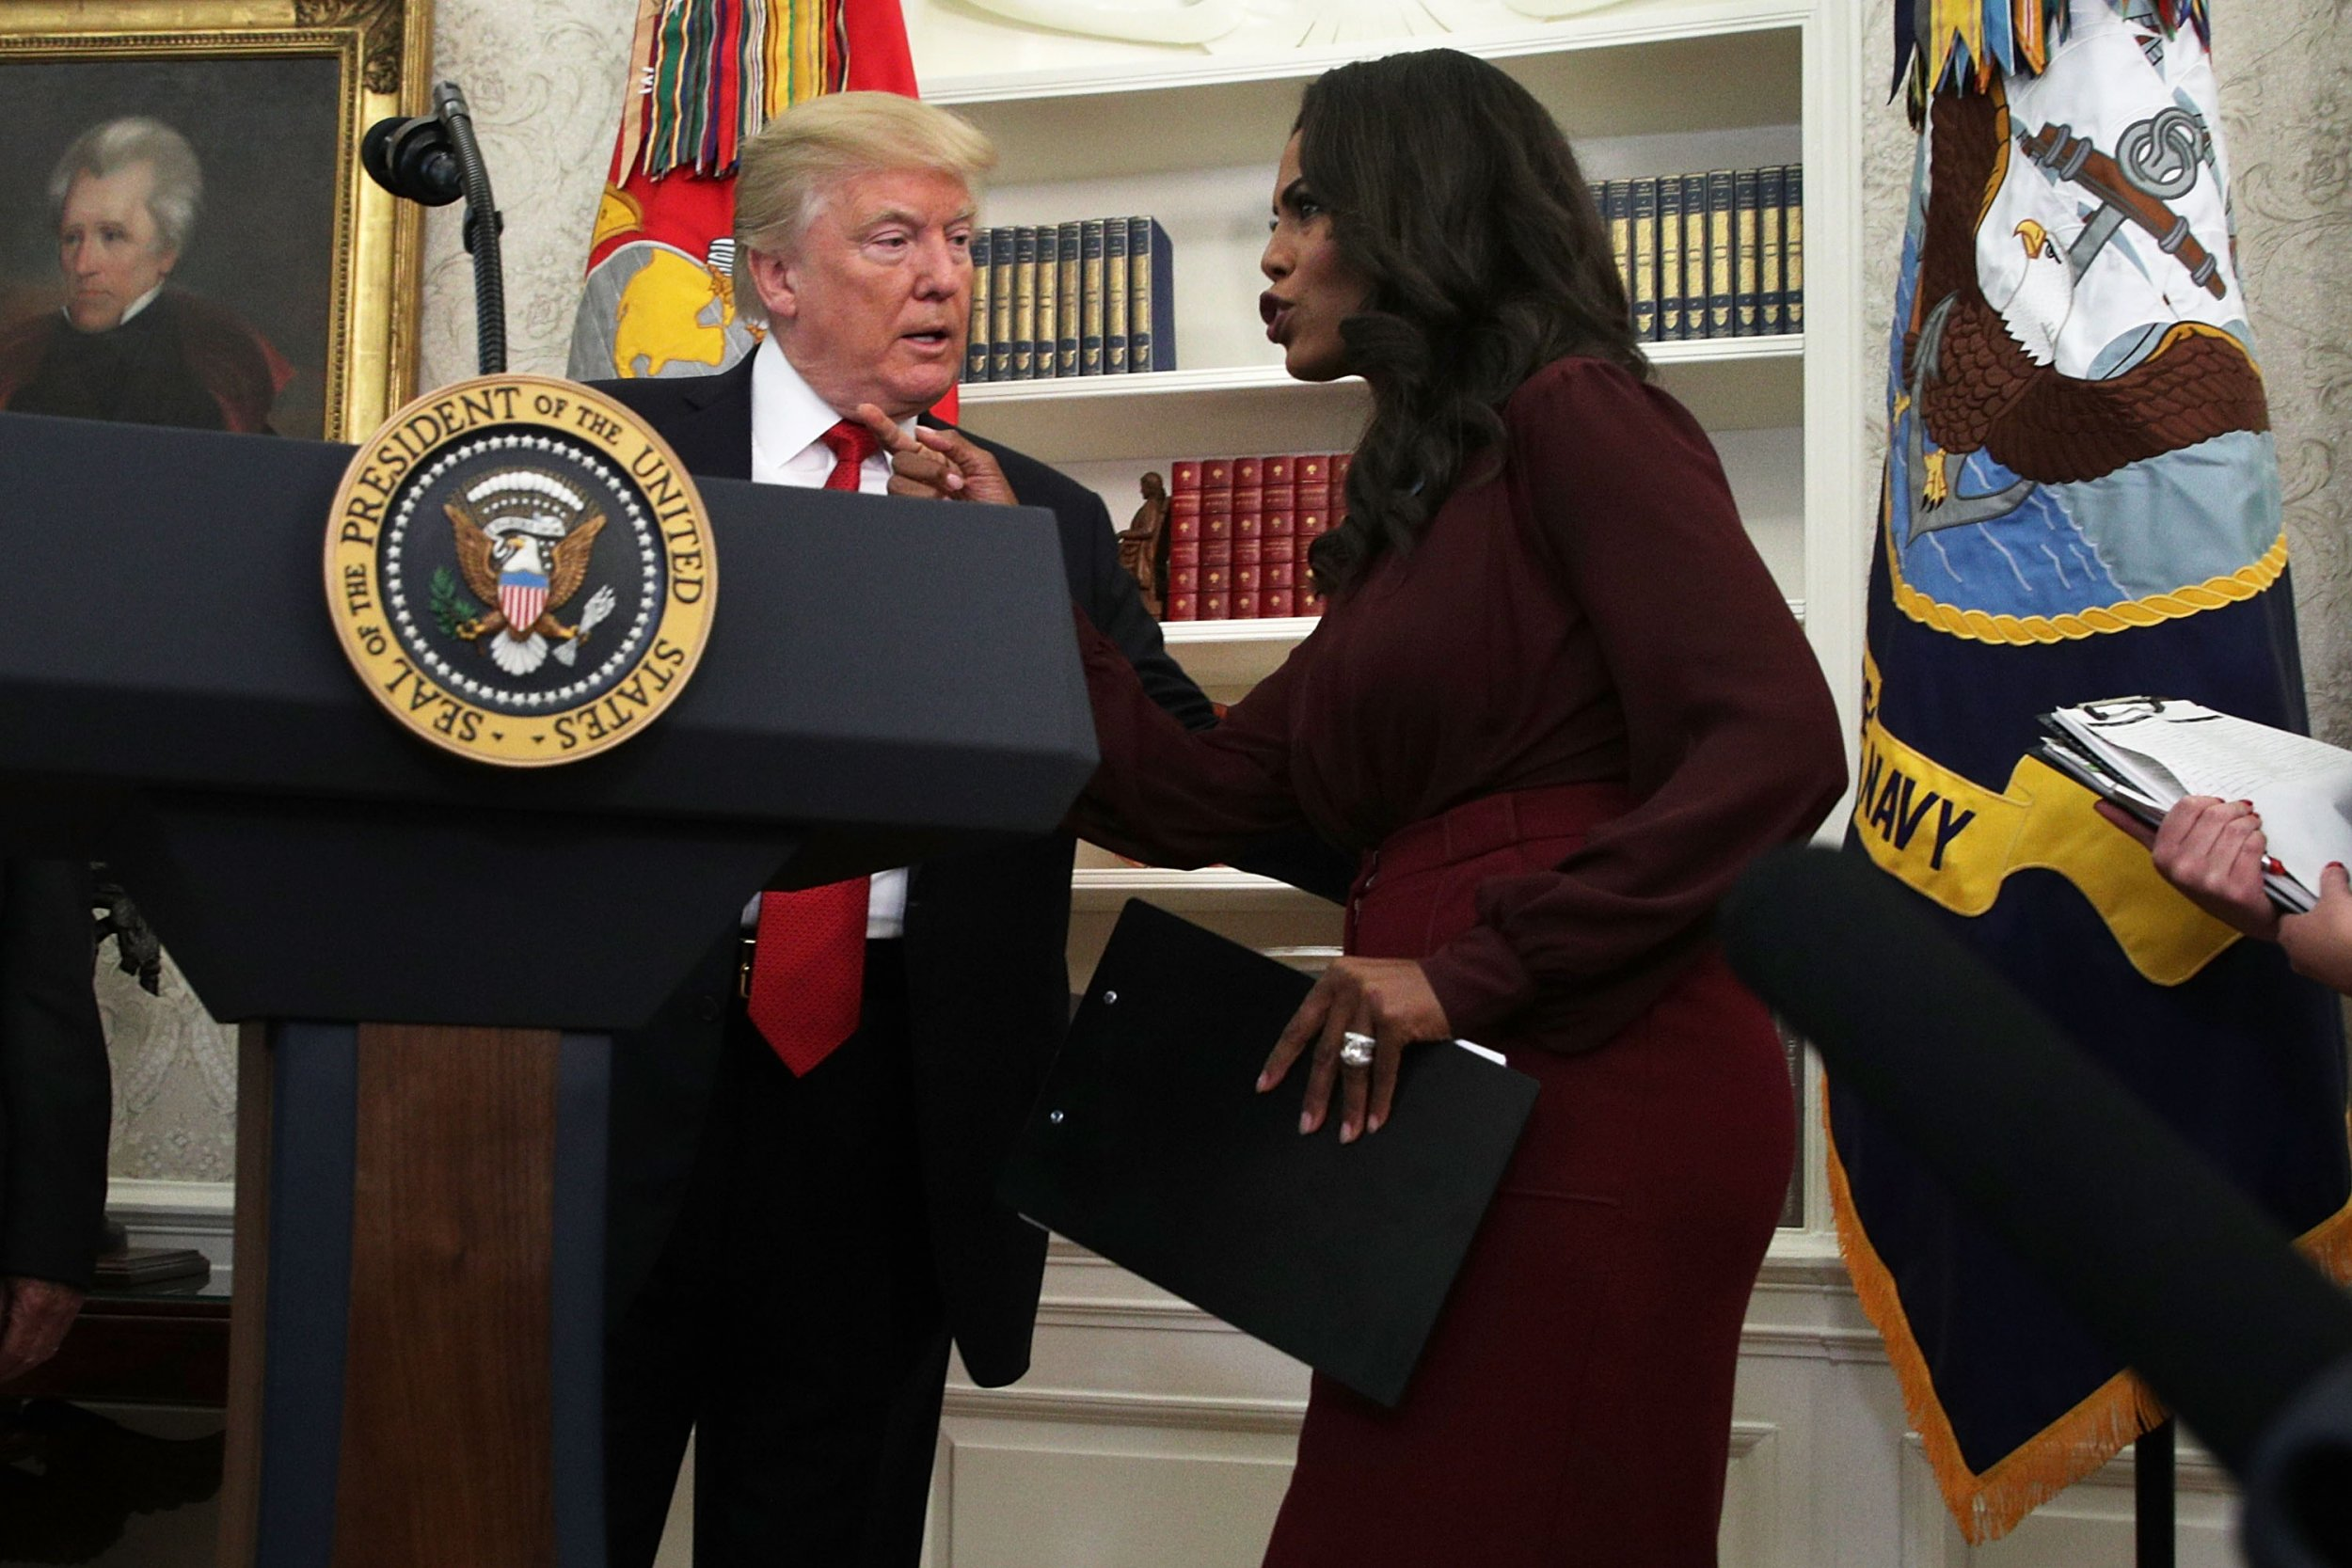 Omarosa Donald Trump mental capacity old uncle